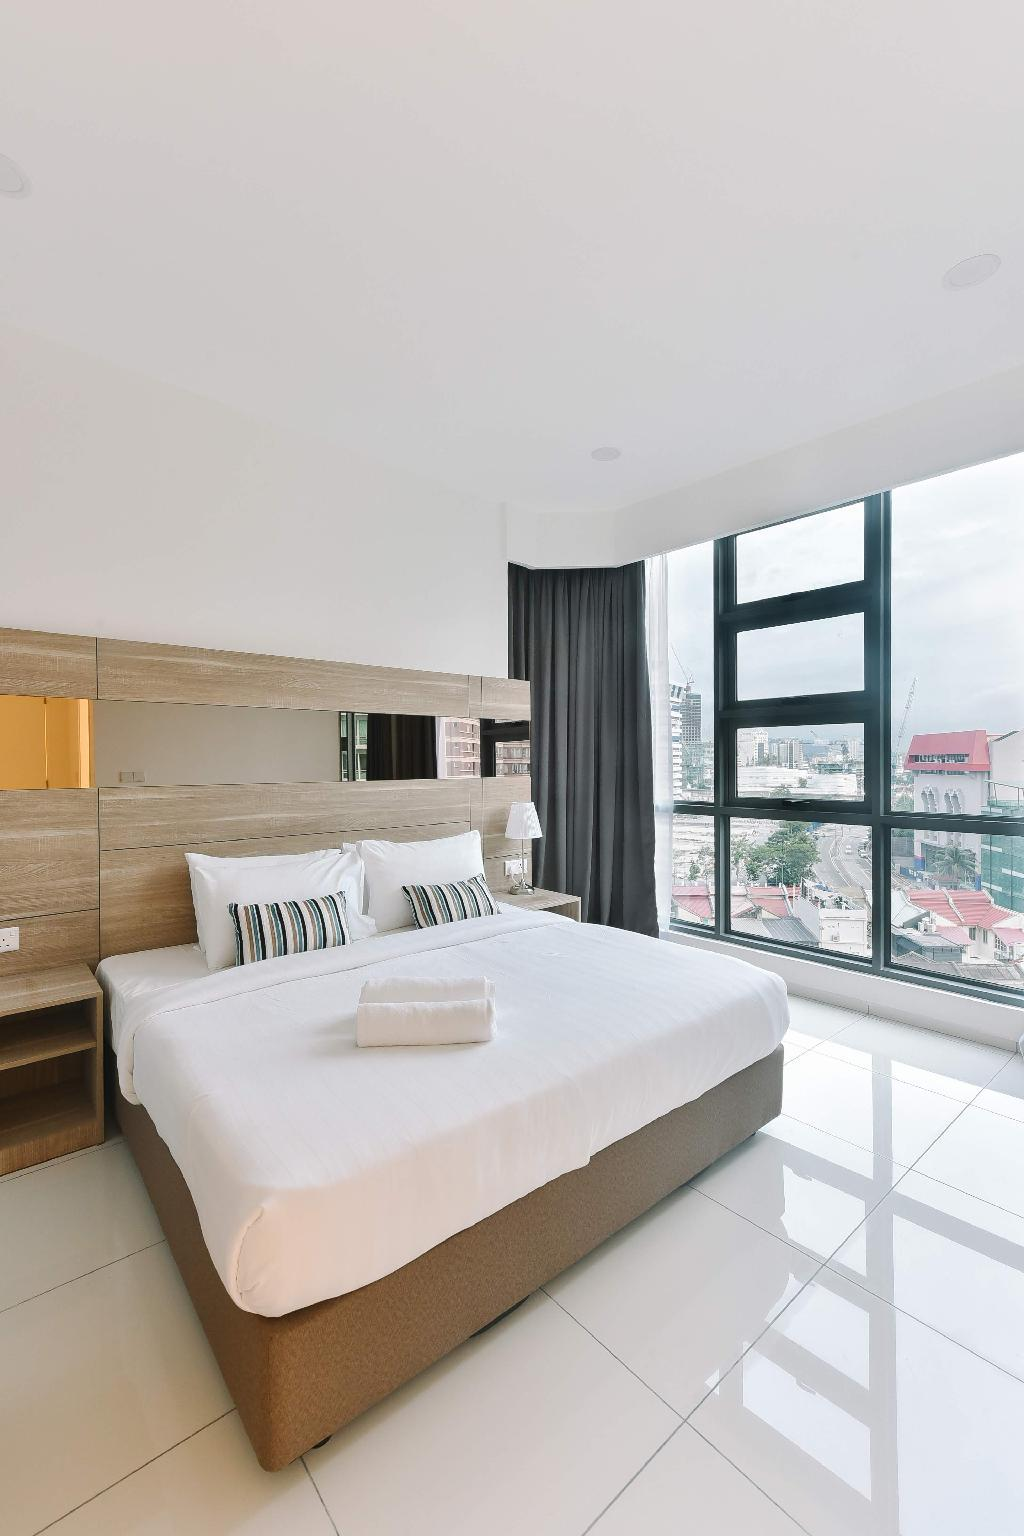 Best Price On Robertson Premier Suites By Subhome In Kuala